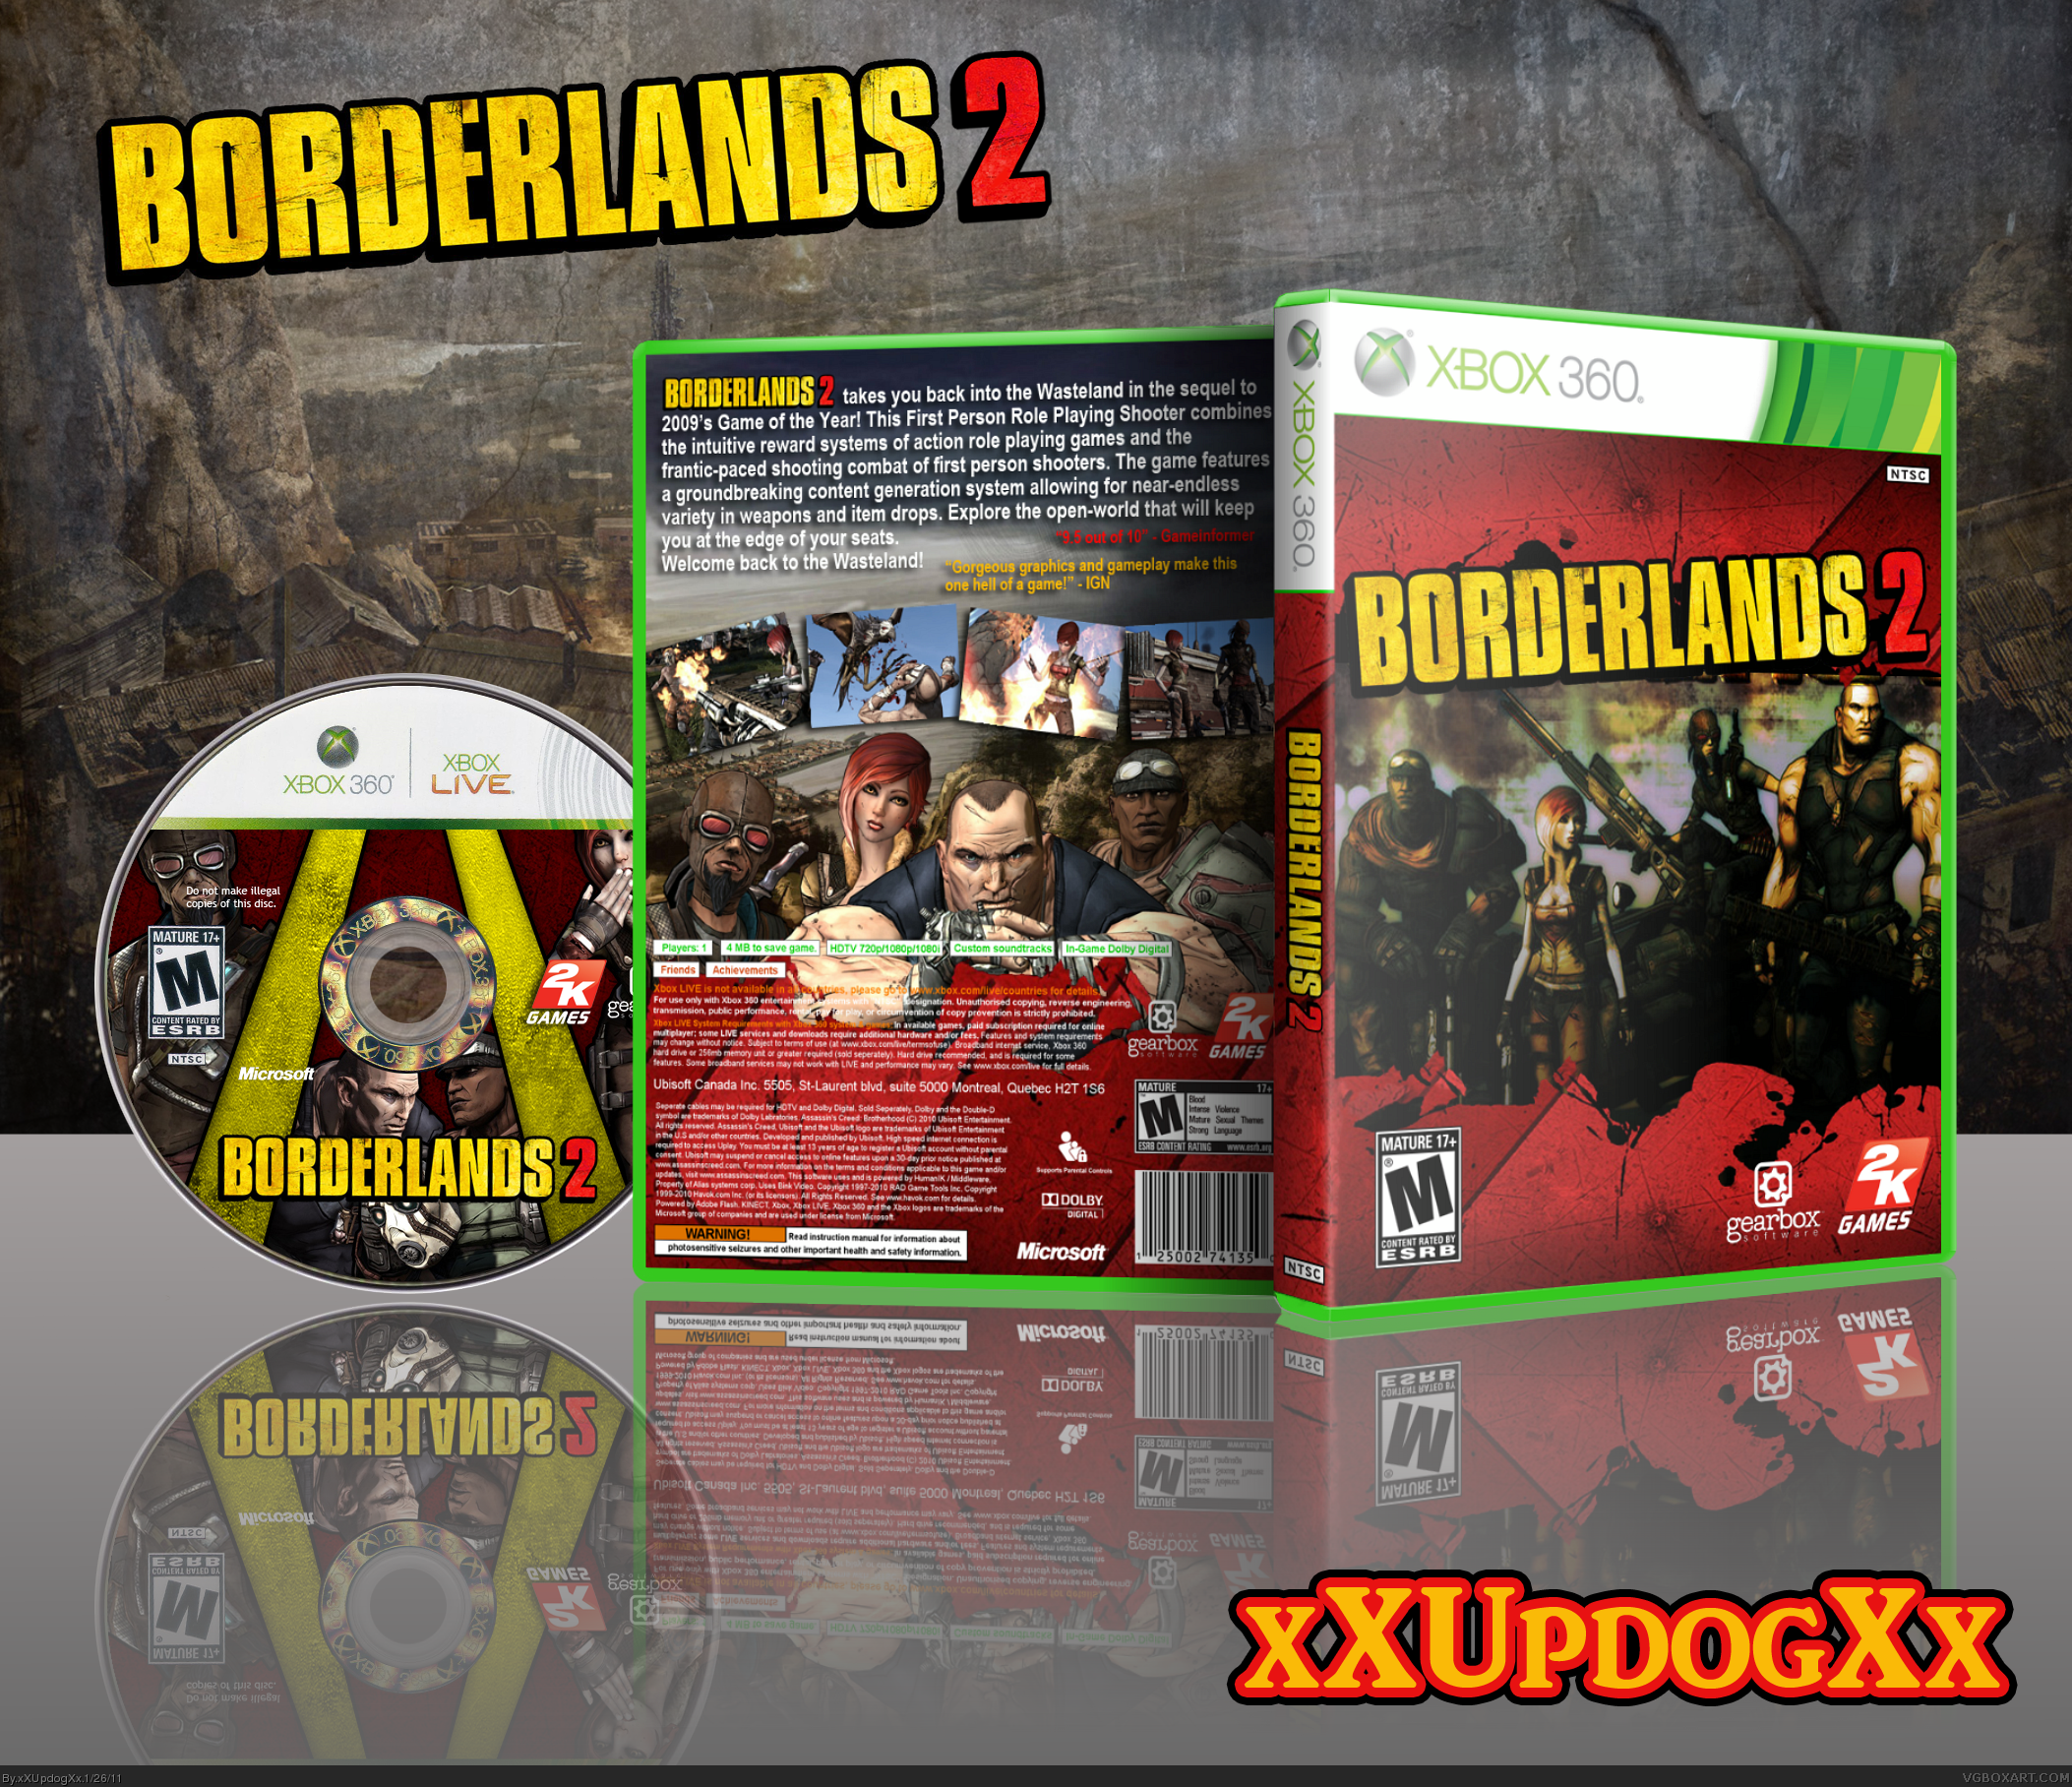 Borderlands 2 box cover